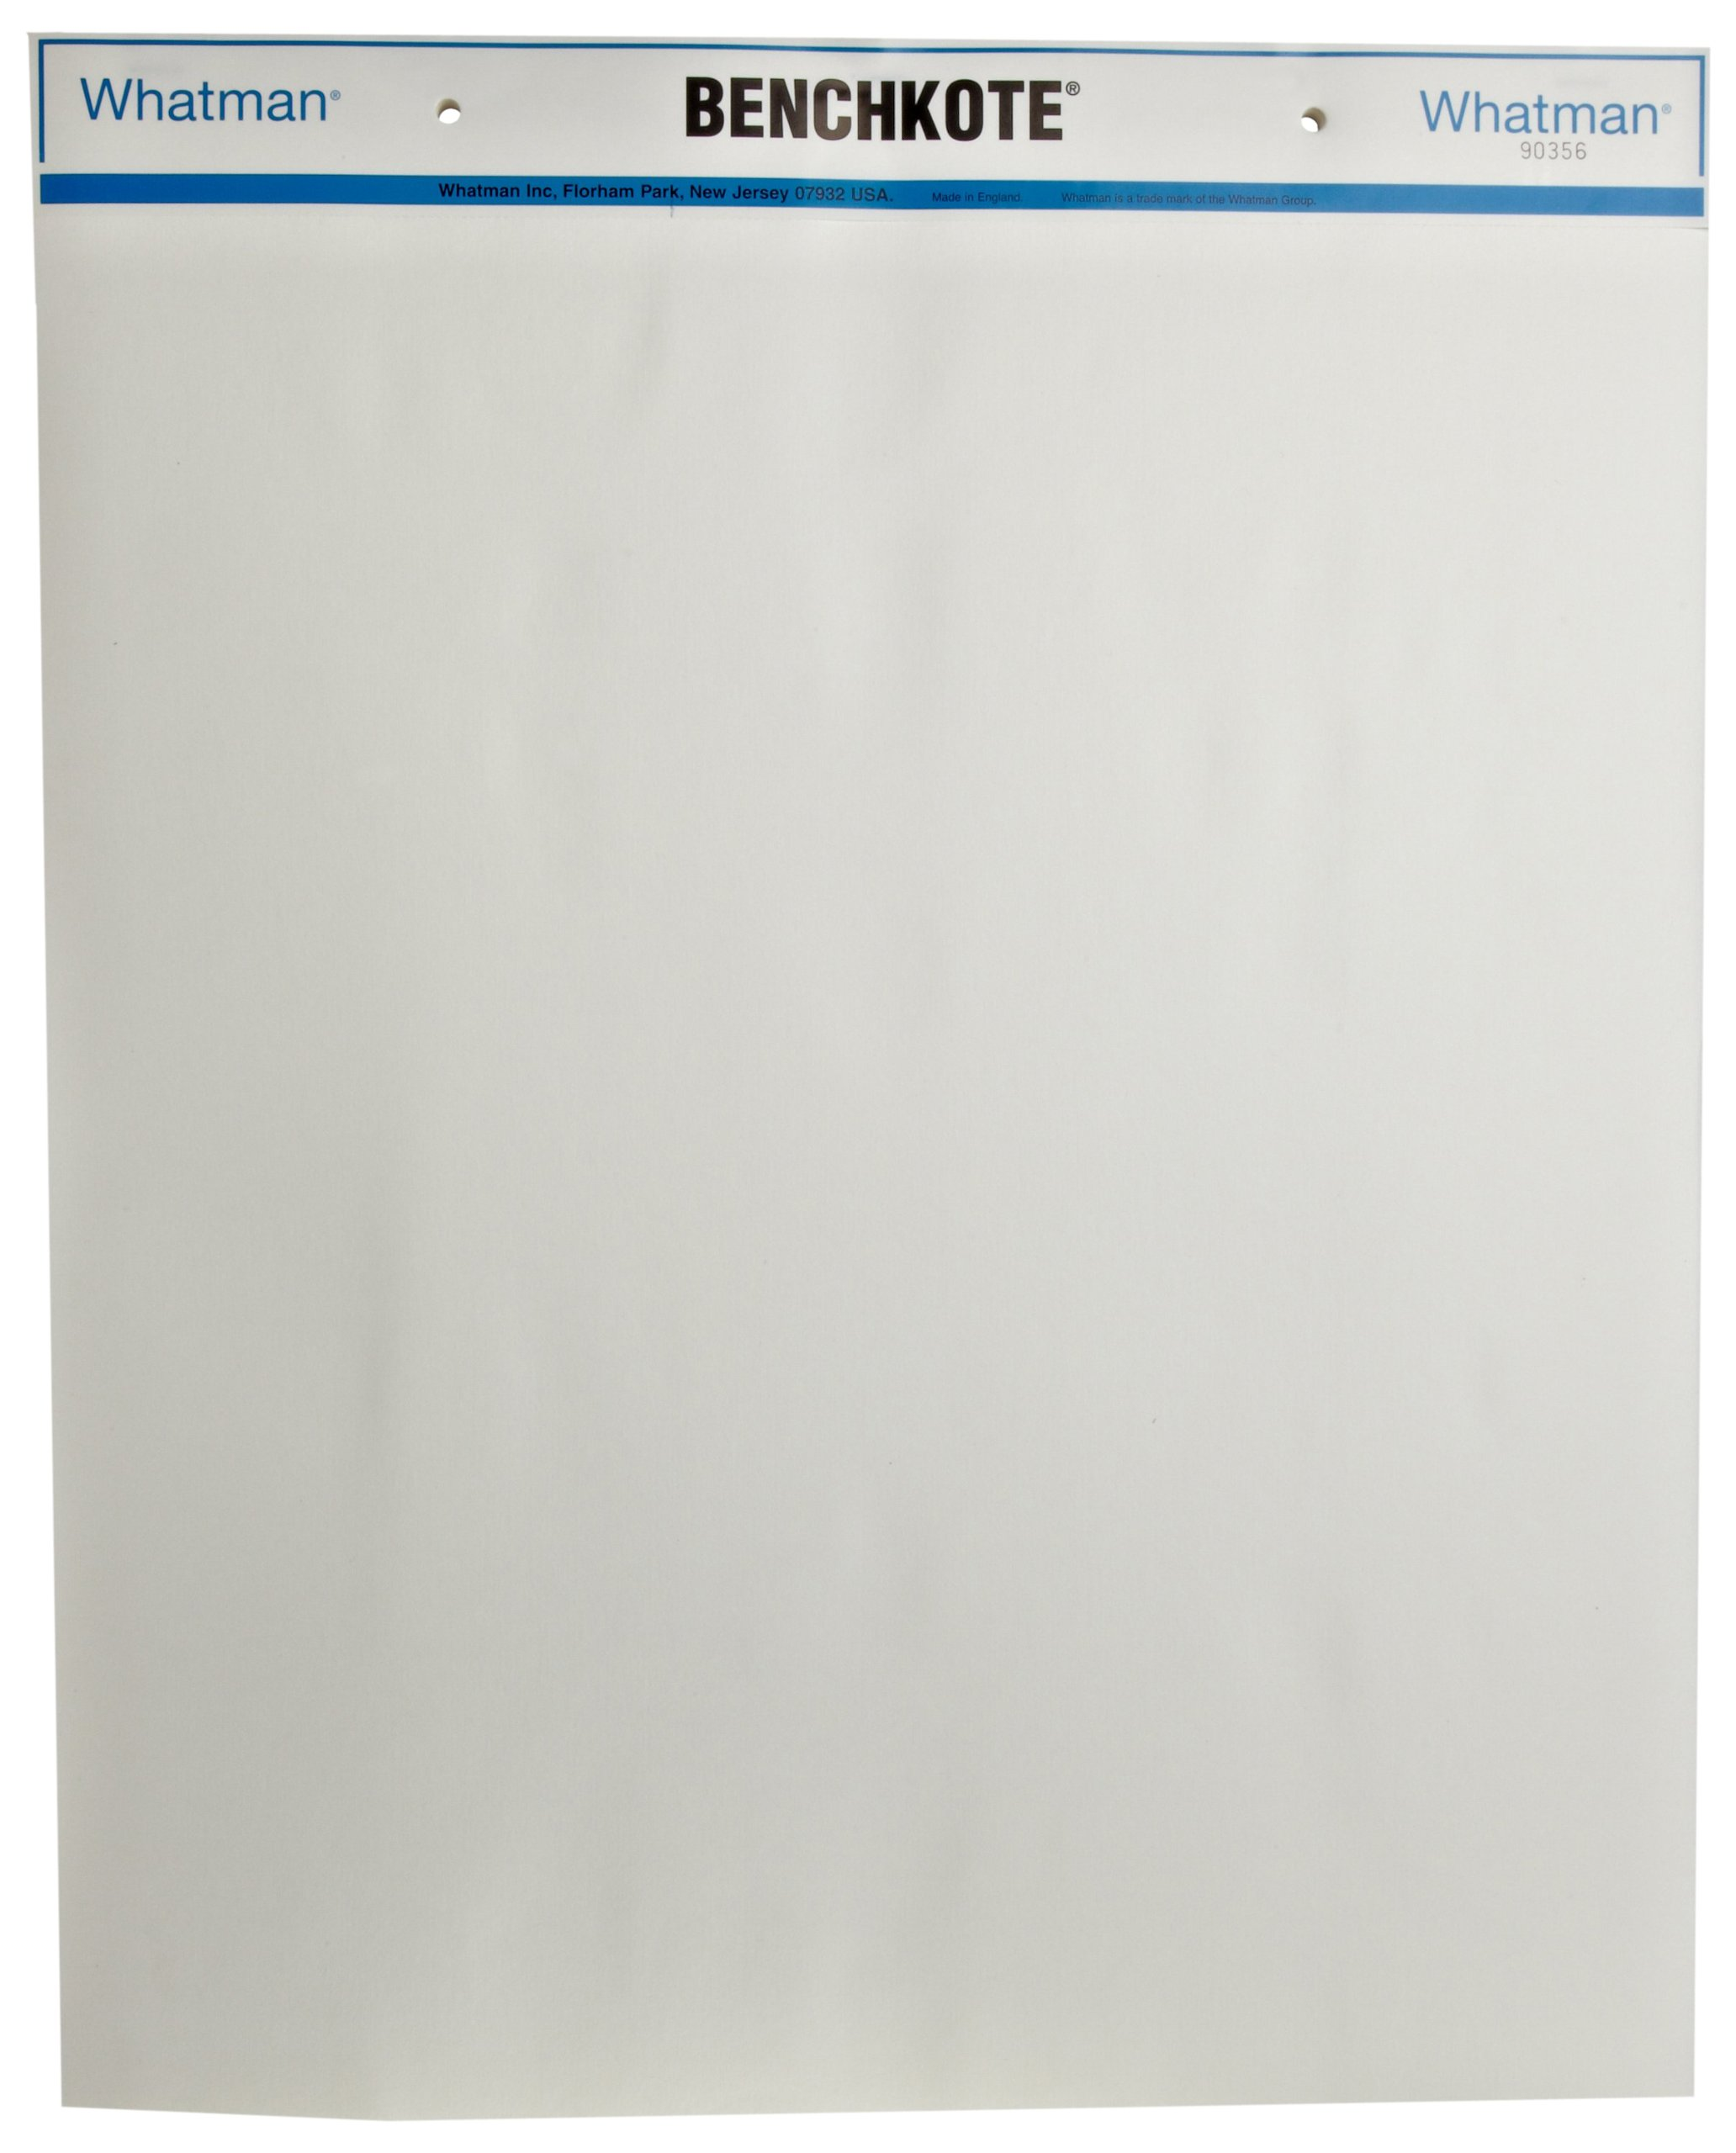 Whatman 2300-594 Benchkote Surface Protector Pad, 570mm Length x 460mm Width (Pack of 50)